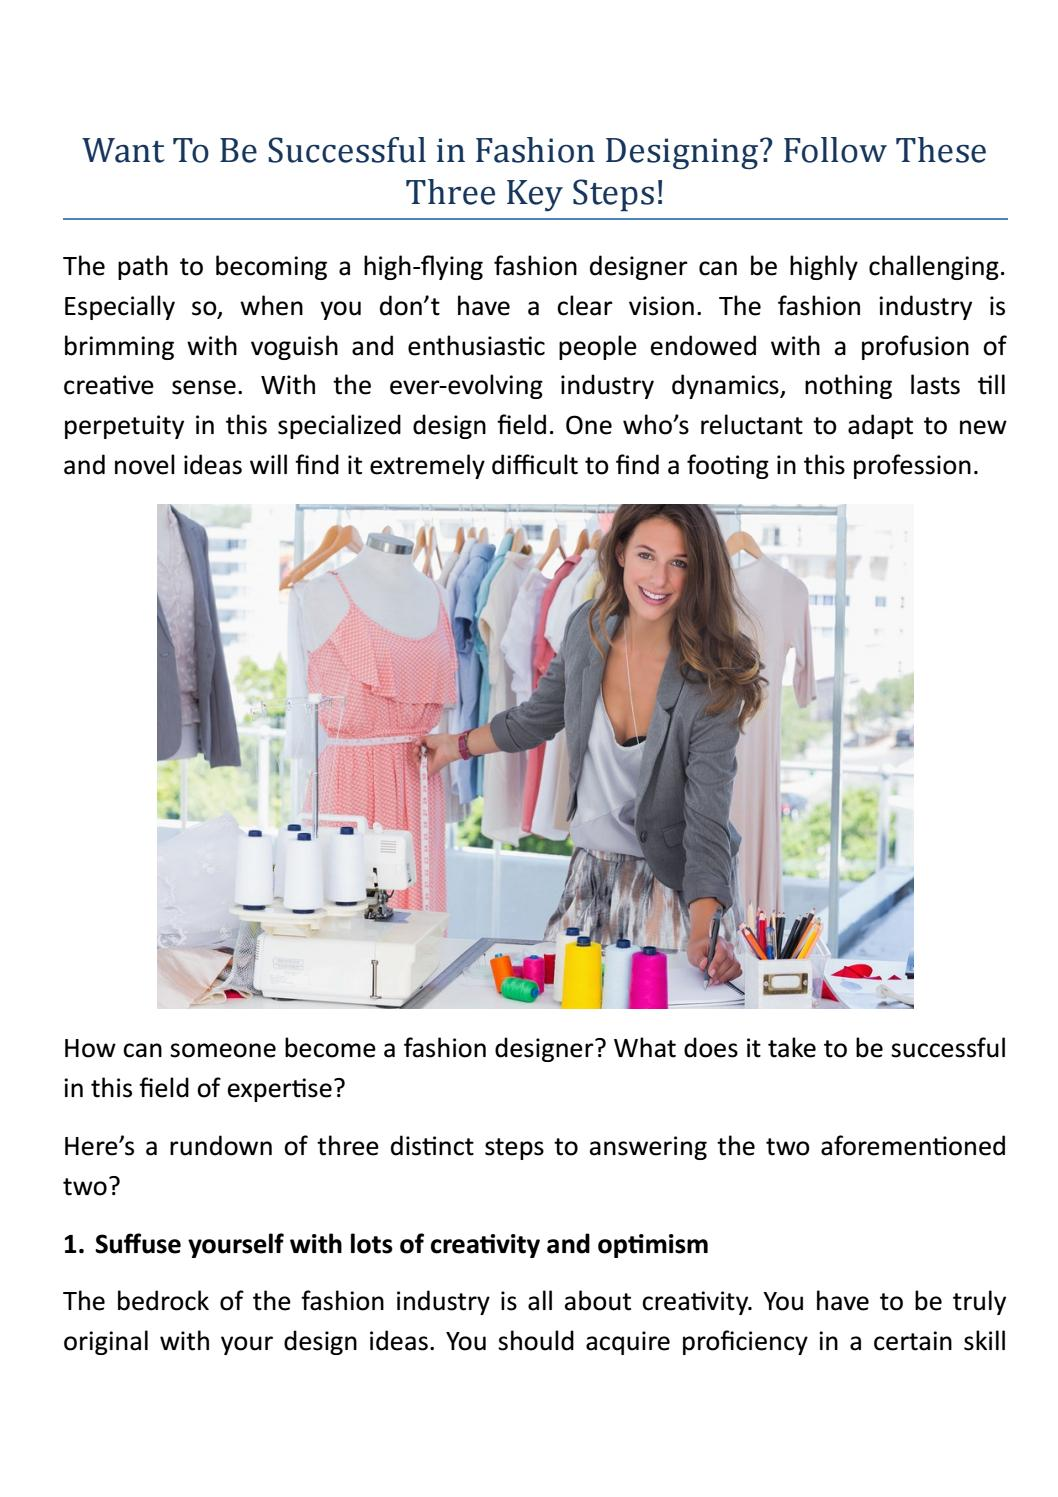 Want To Be Successful In Fashion Designing Follow These Three Key Steps By Manya Verma Issuu